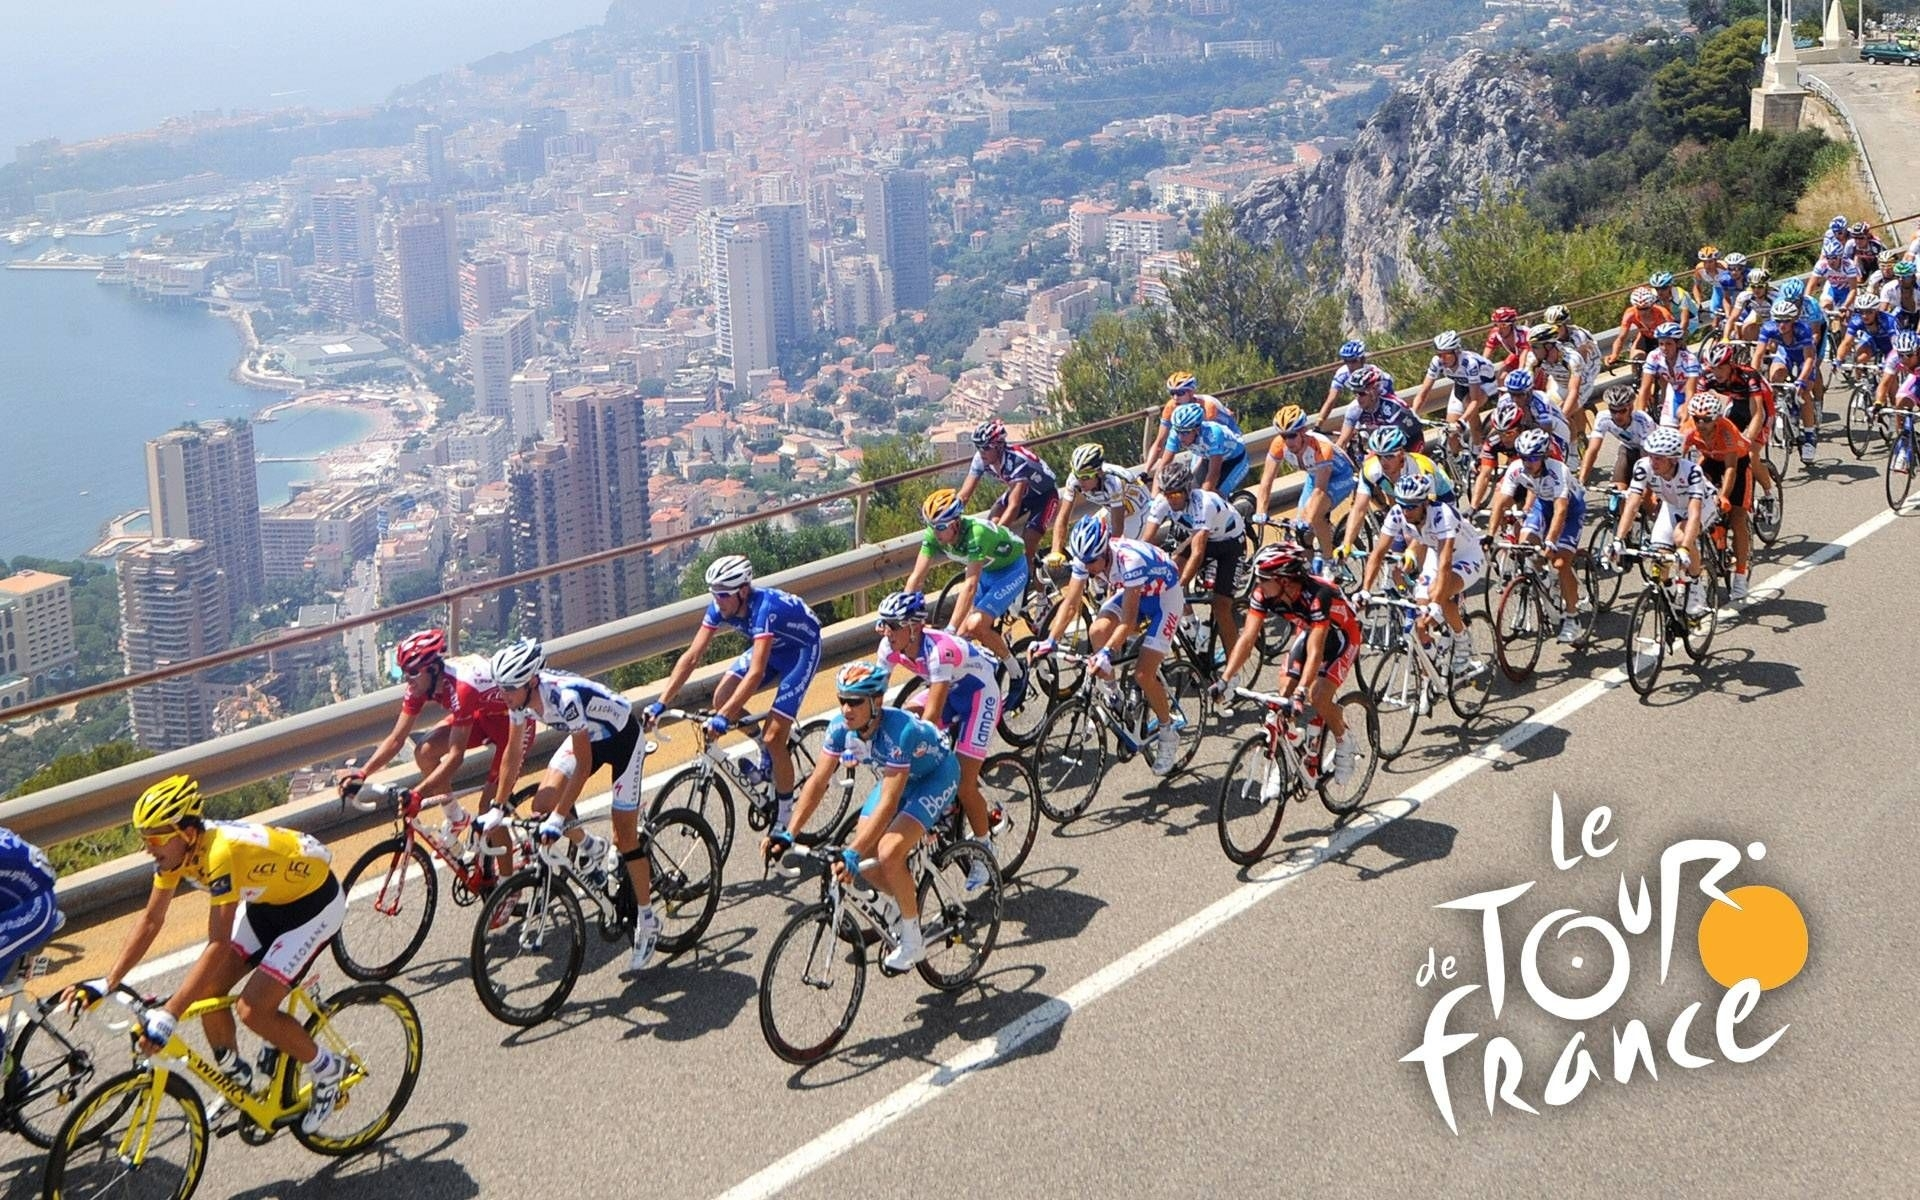 tour de france wallpaper | bicycling photos | sport wallpapers